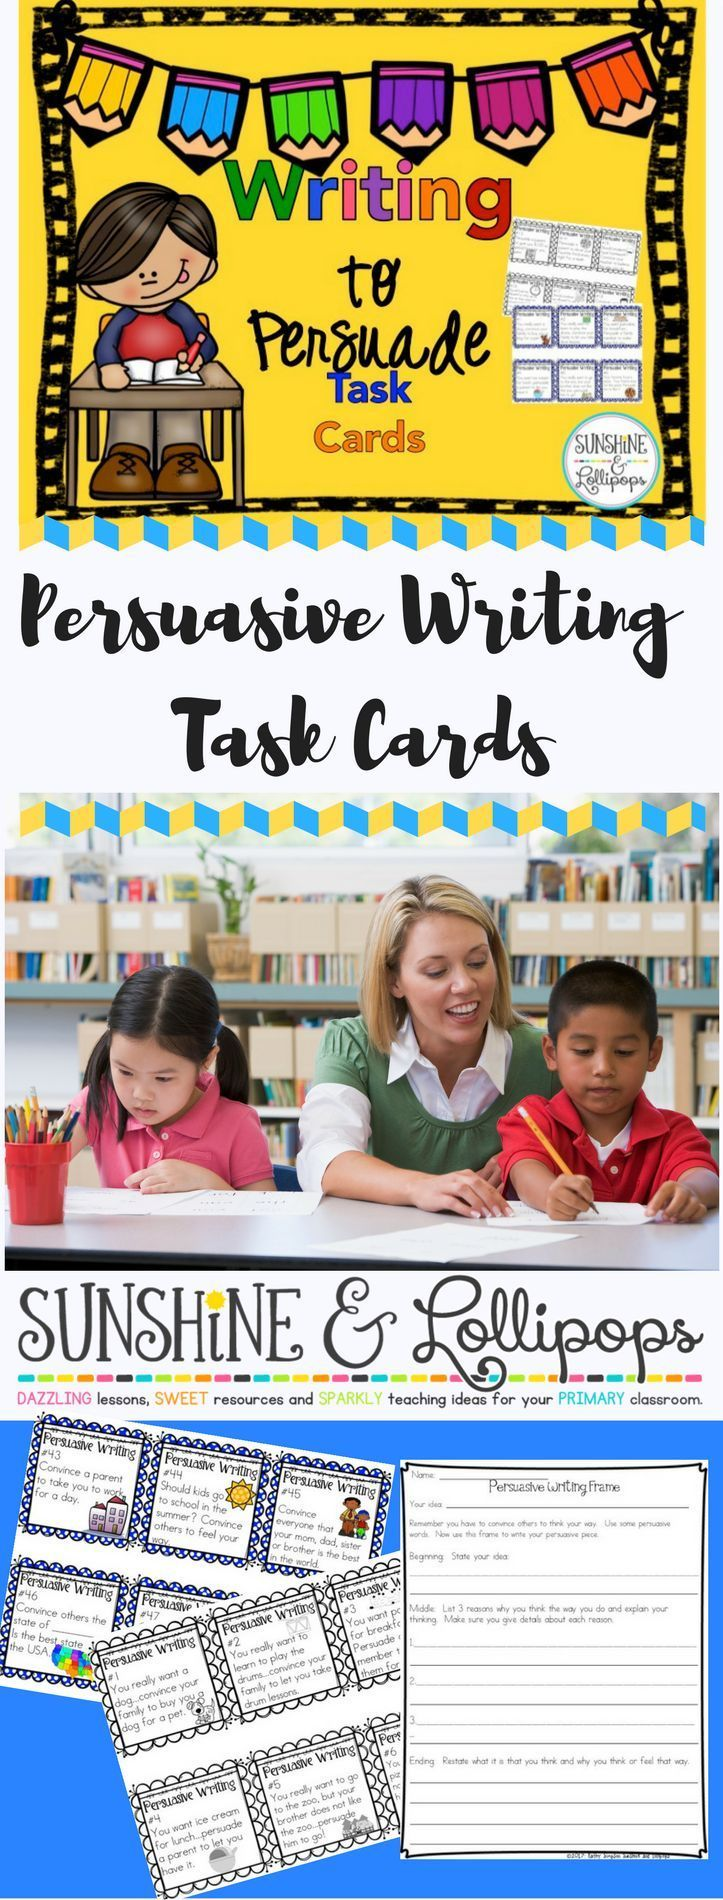 fun persuasive essay prompts Browse persuasive writing prompts resources on  persuasive writing is a fun writing  writing assignments 18 persuasive writing essay prompts that will.